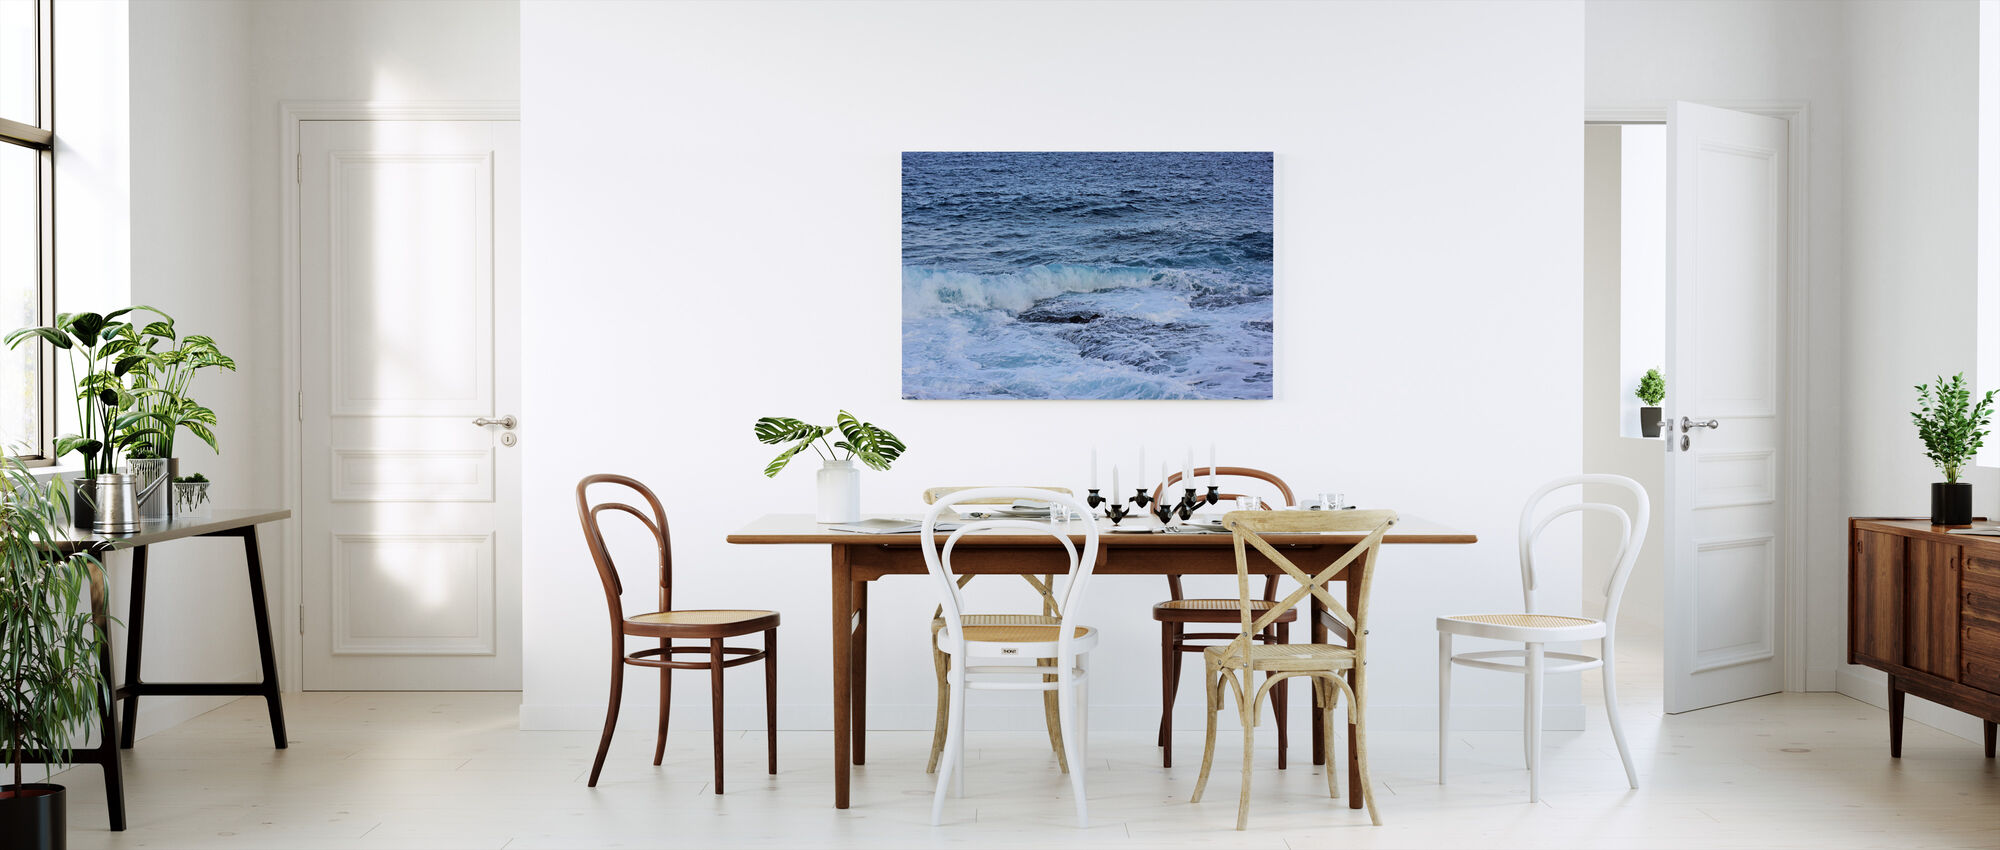 Drown You In - Canvas print - Kitchen